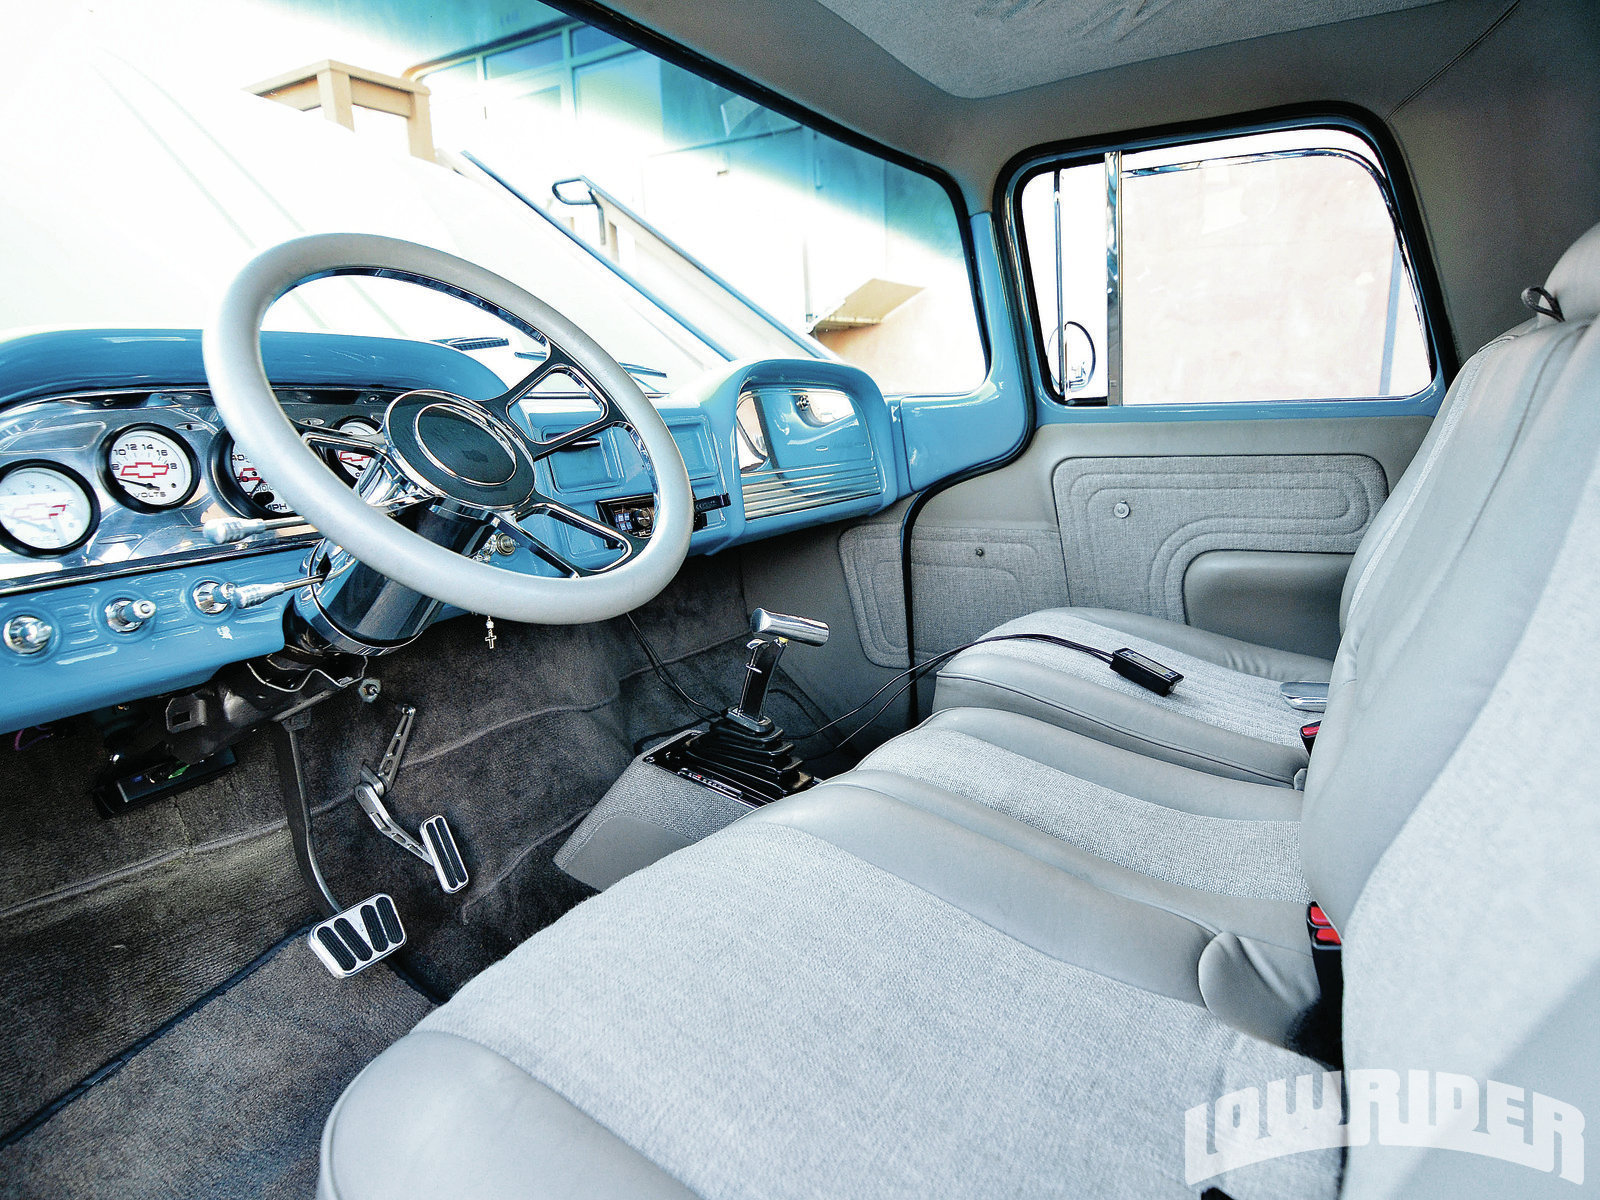 Lrmp O Chevrolet Truck Interior on 1960 chevy panel truck